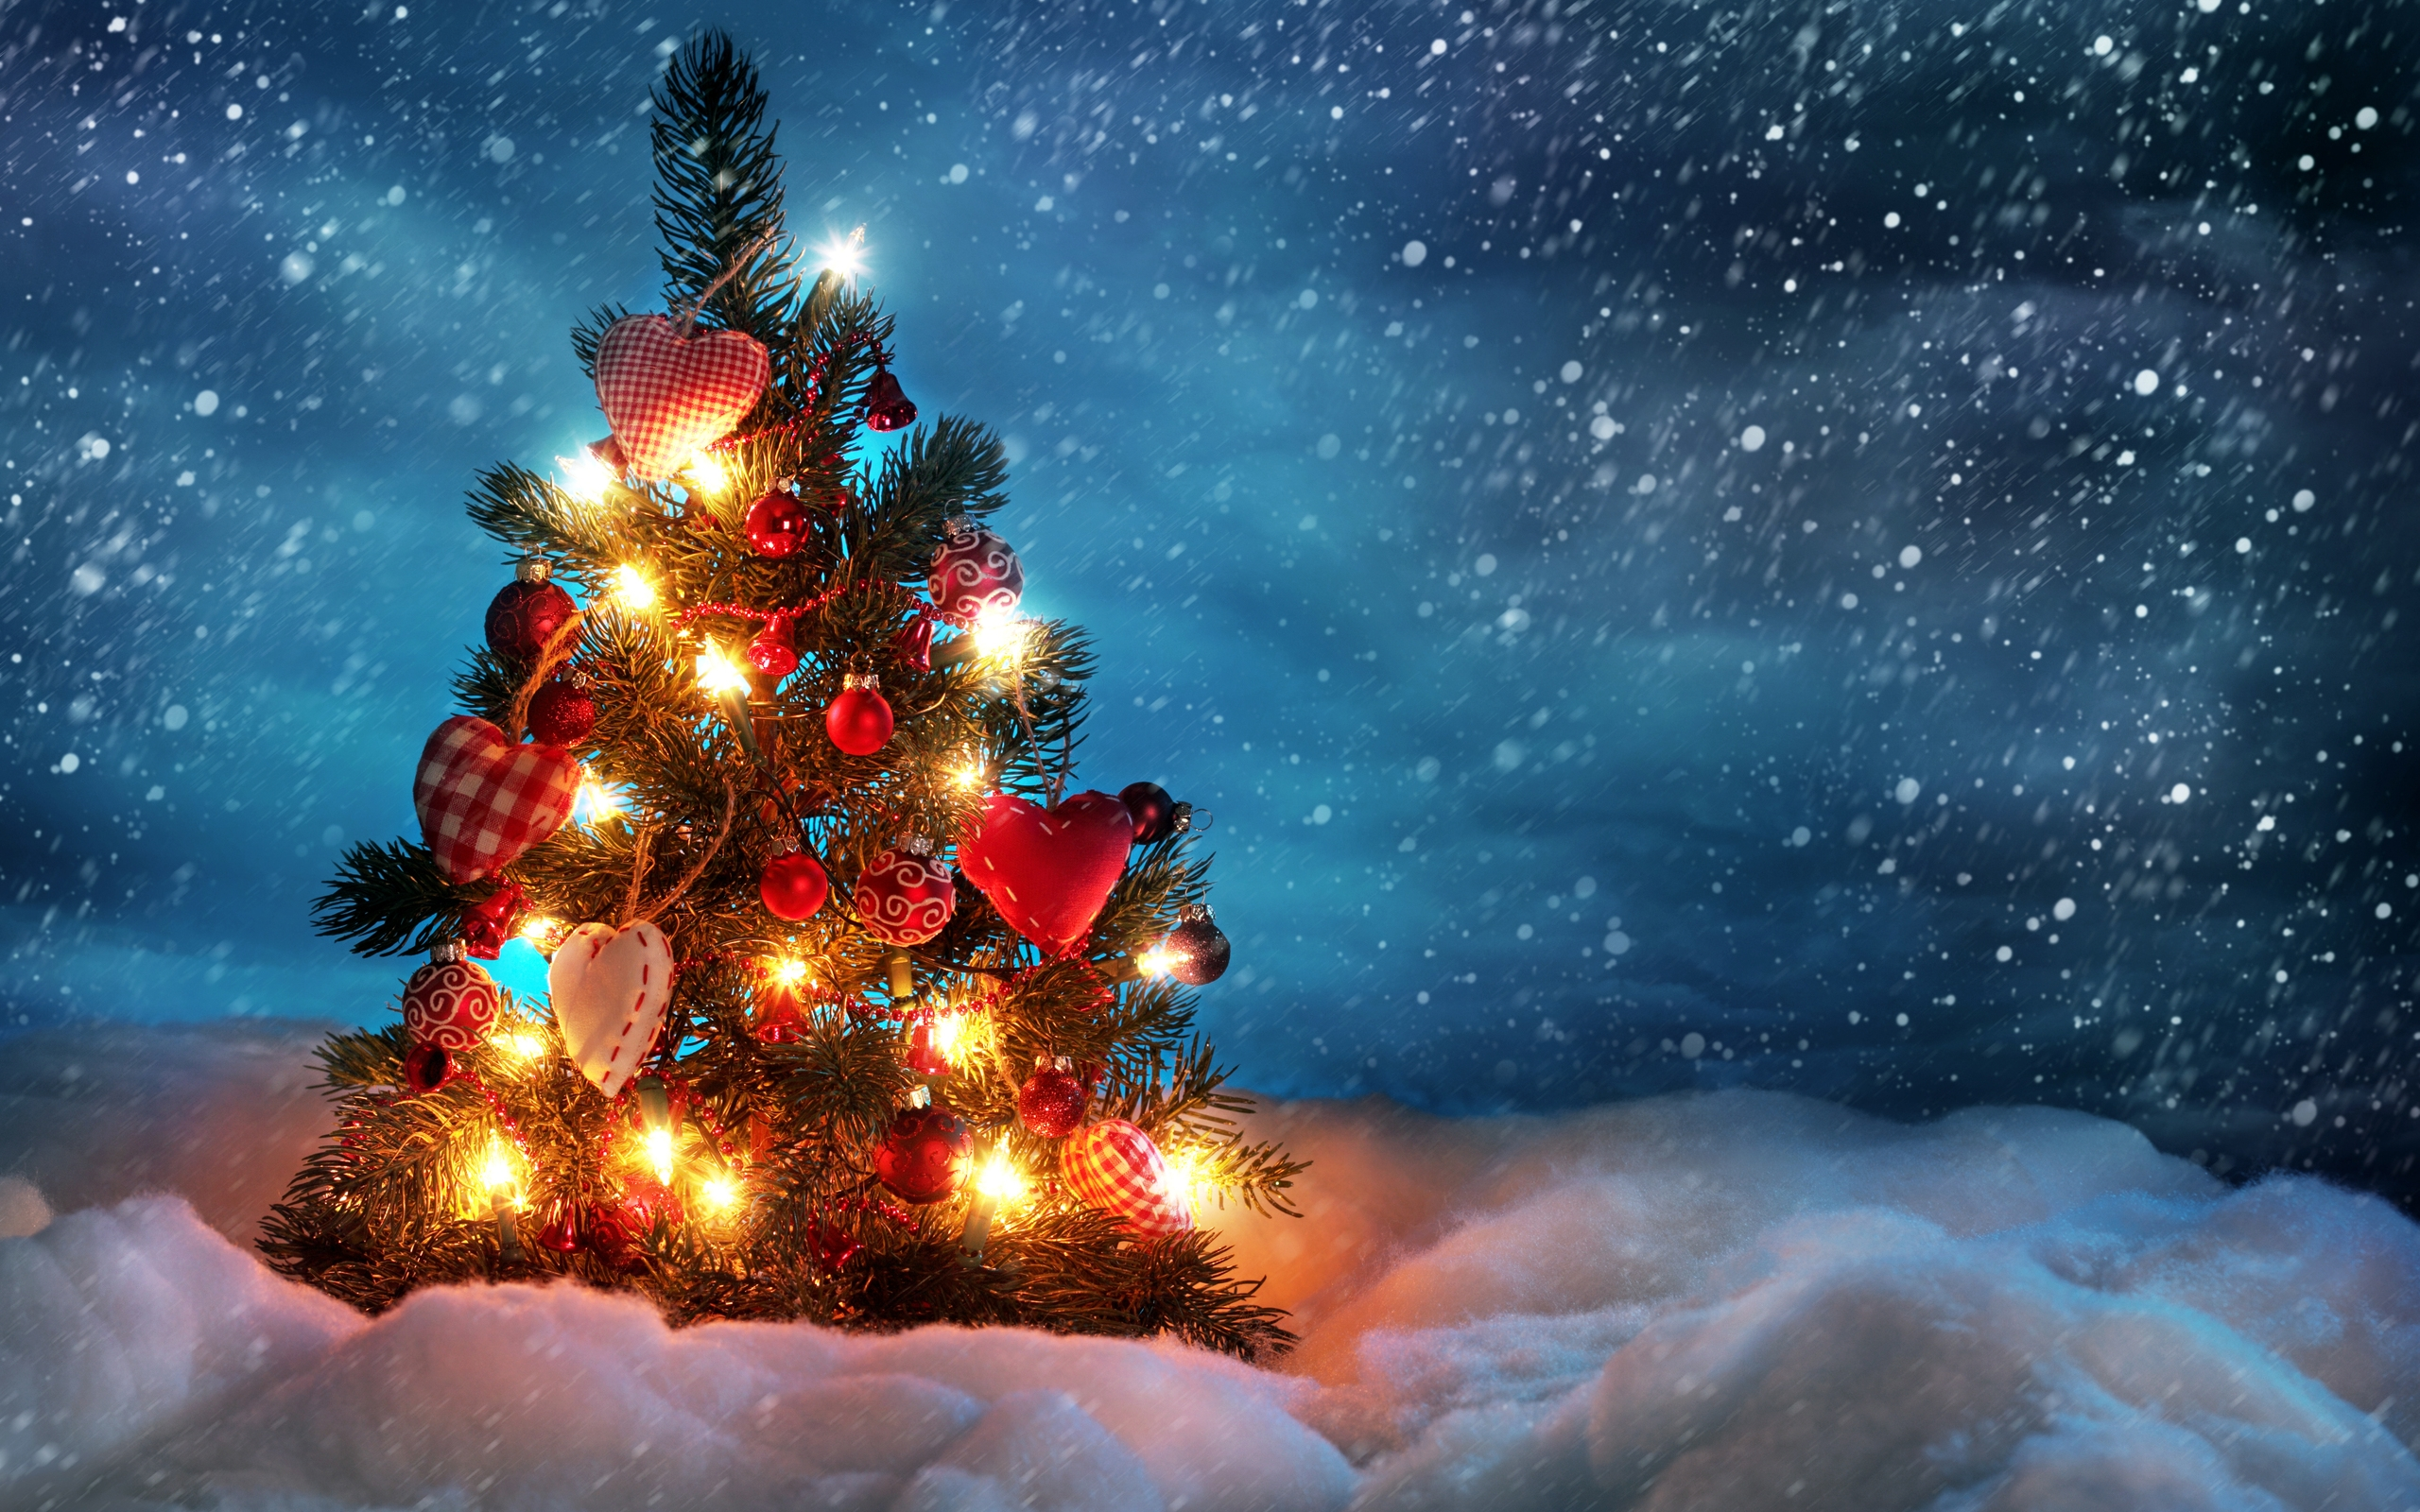 download 3d christmas wallpapers which is under the 3d wallpapers 2560x1600